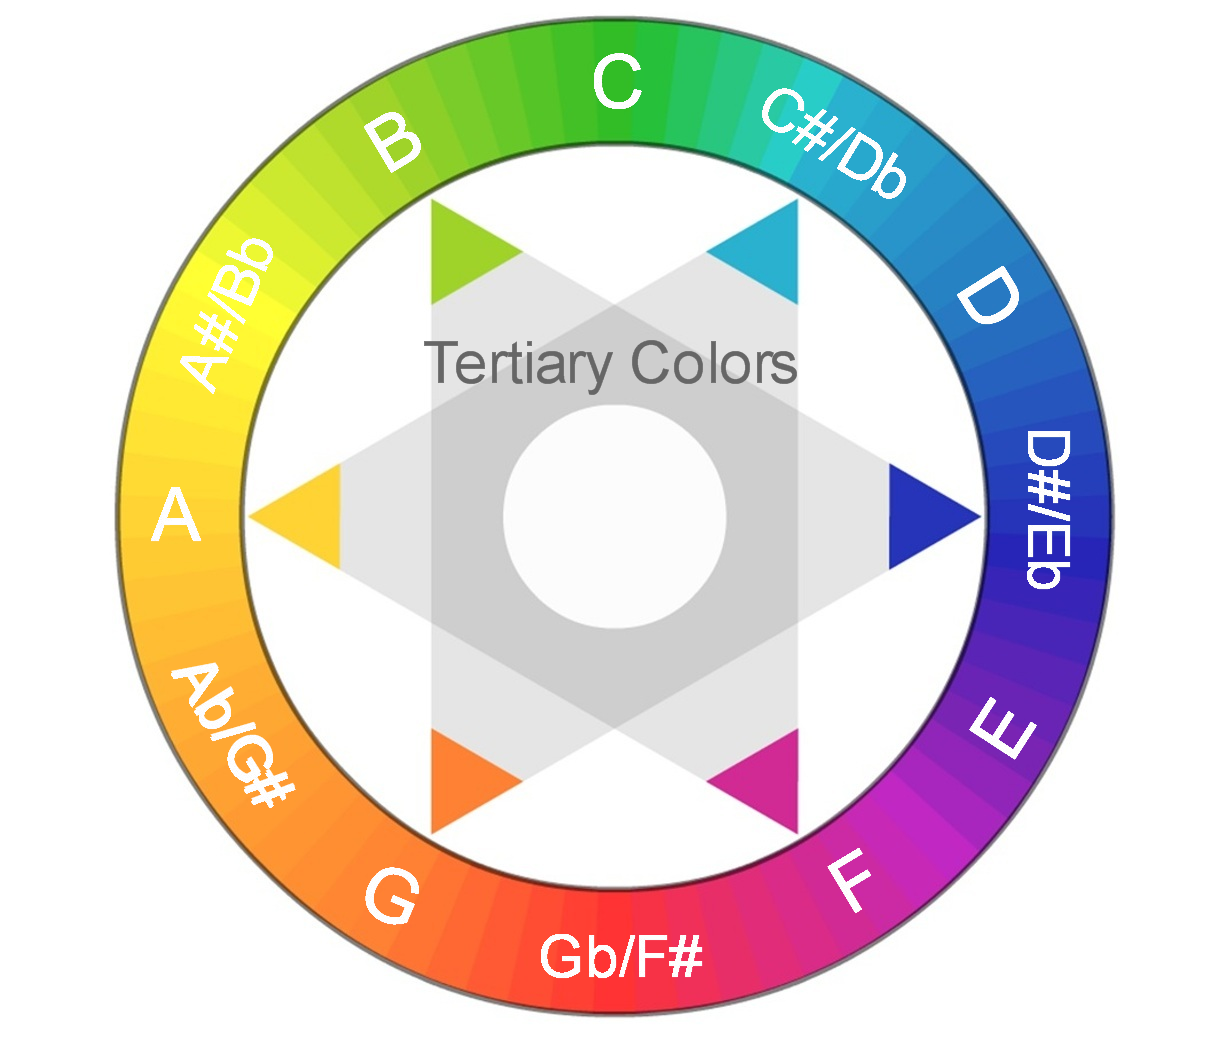 Color Wheel (Tertiary Colors).png